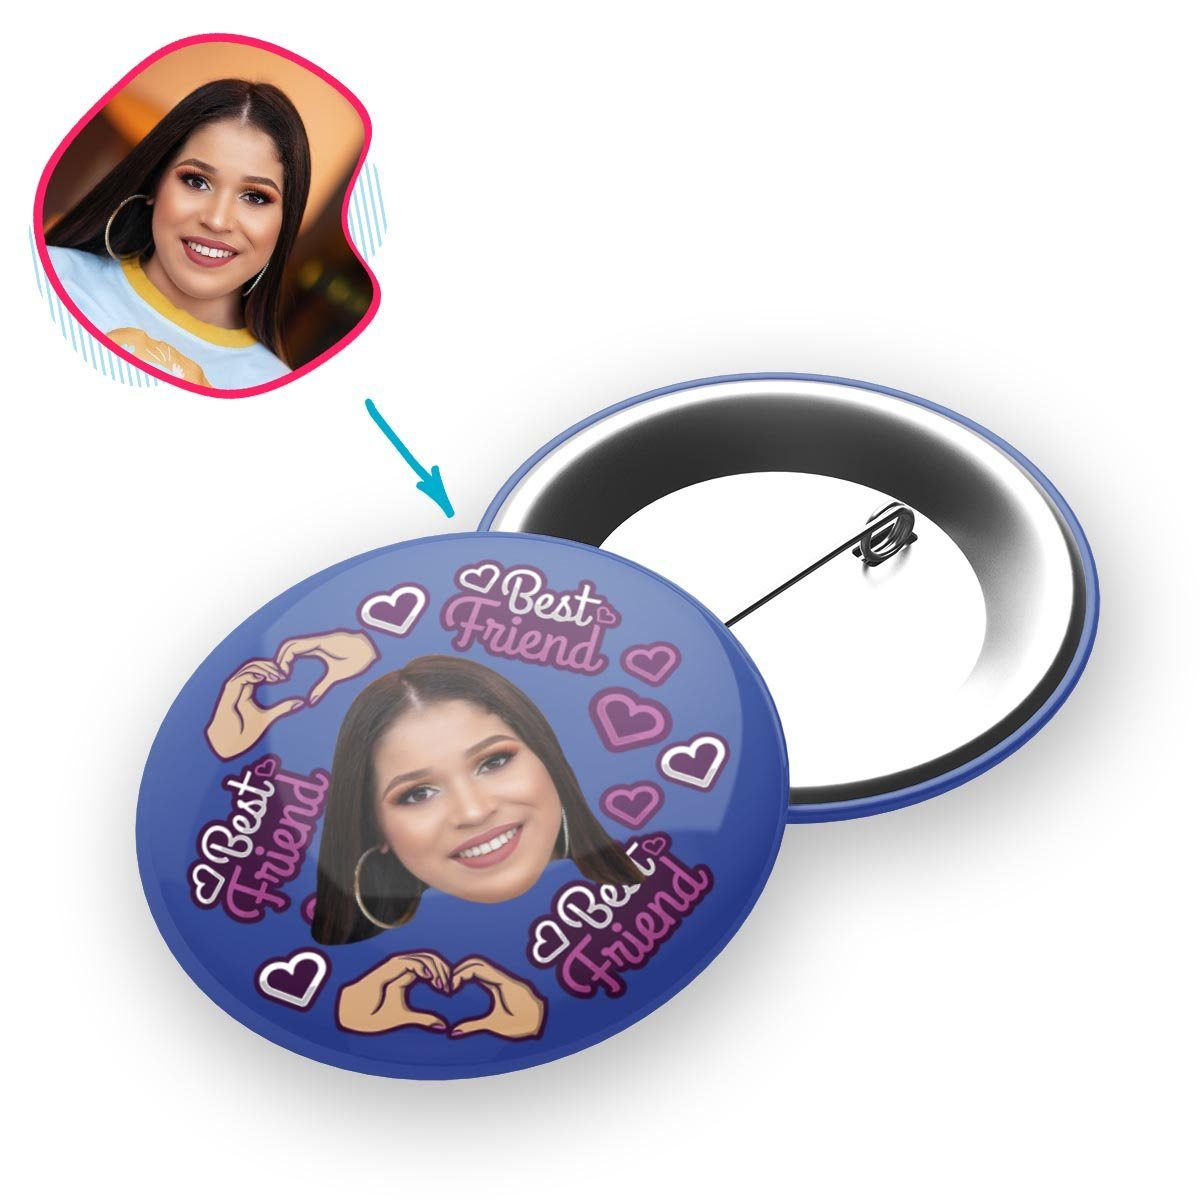 darkblue BFF for Her pin personalized with photo of face printed on it